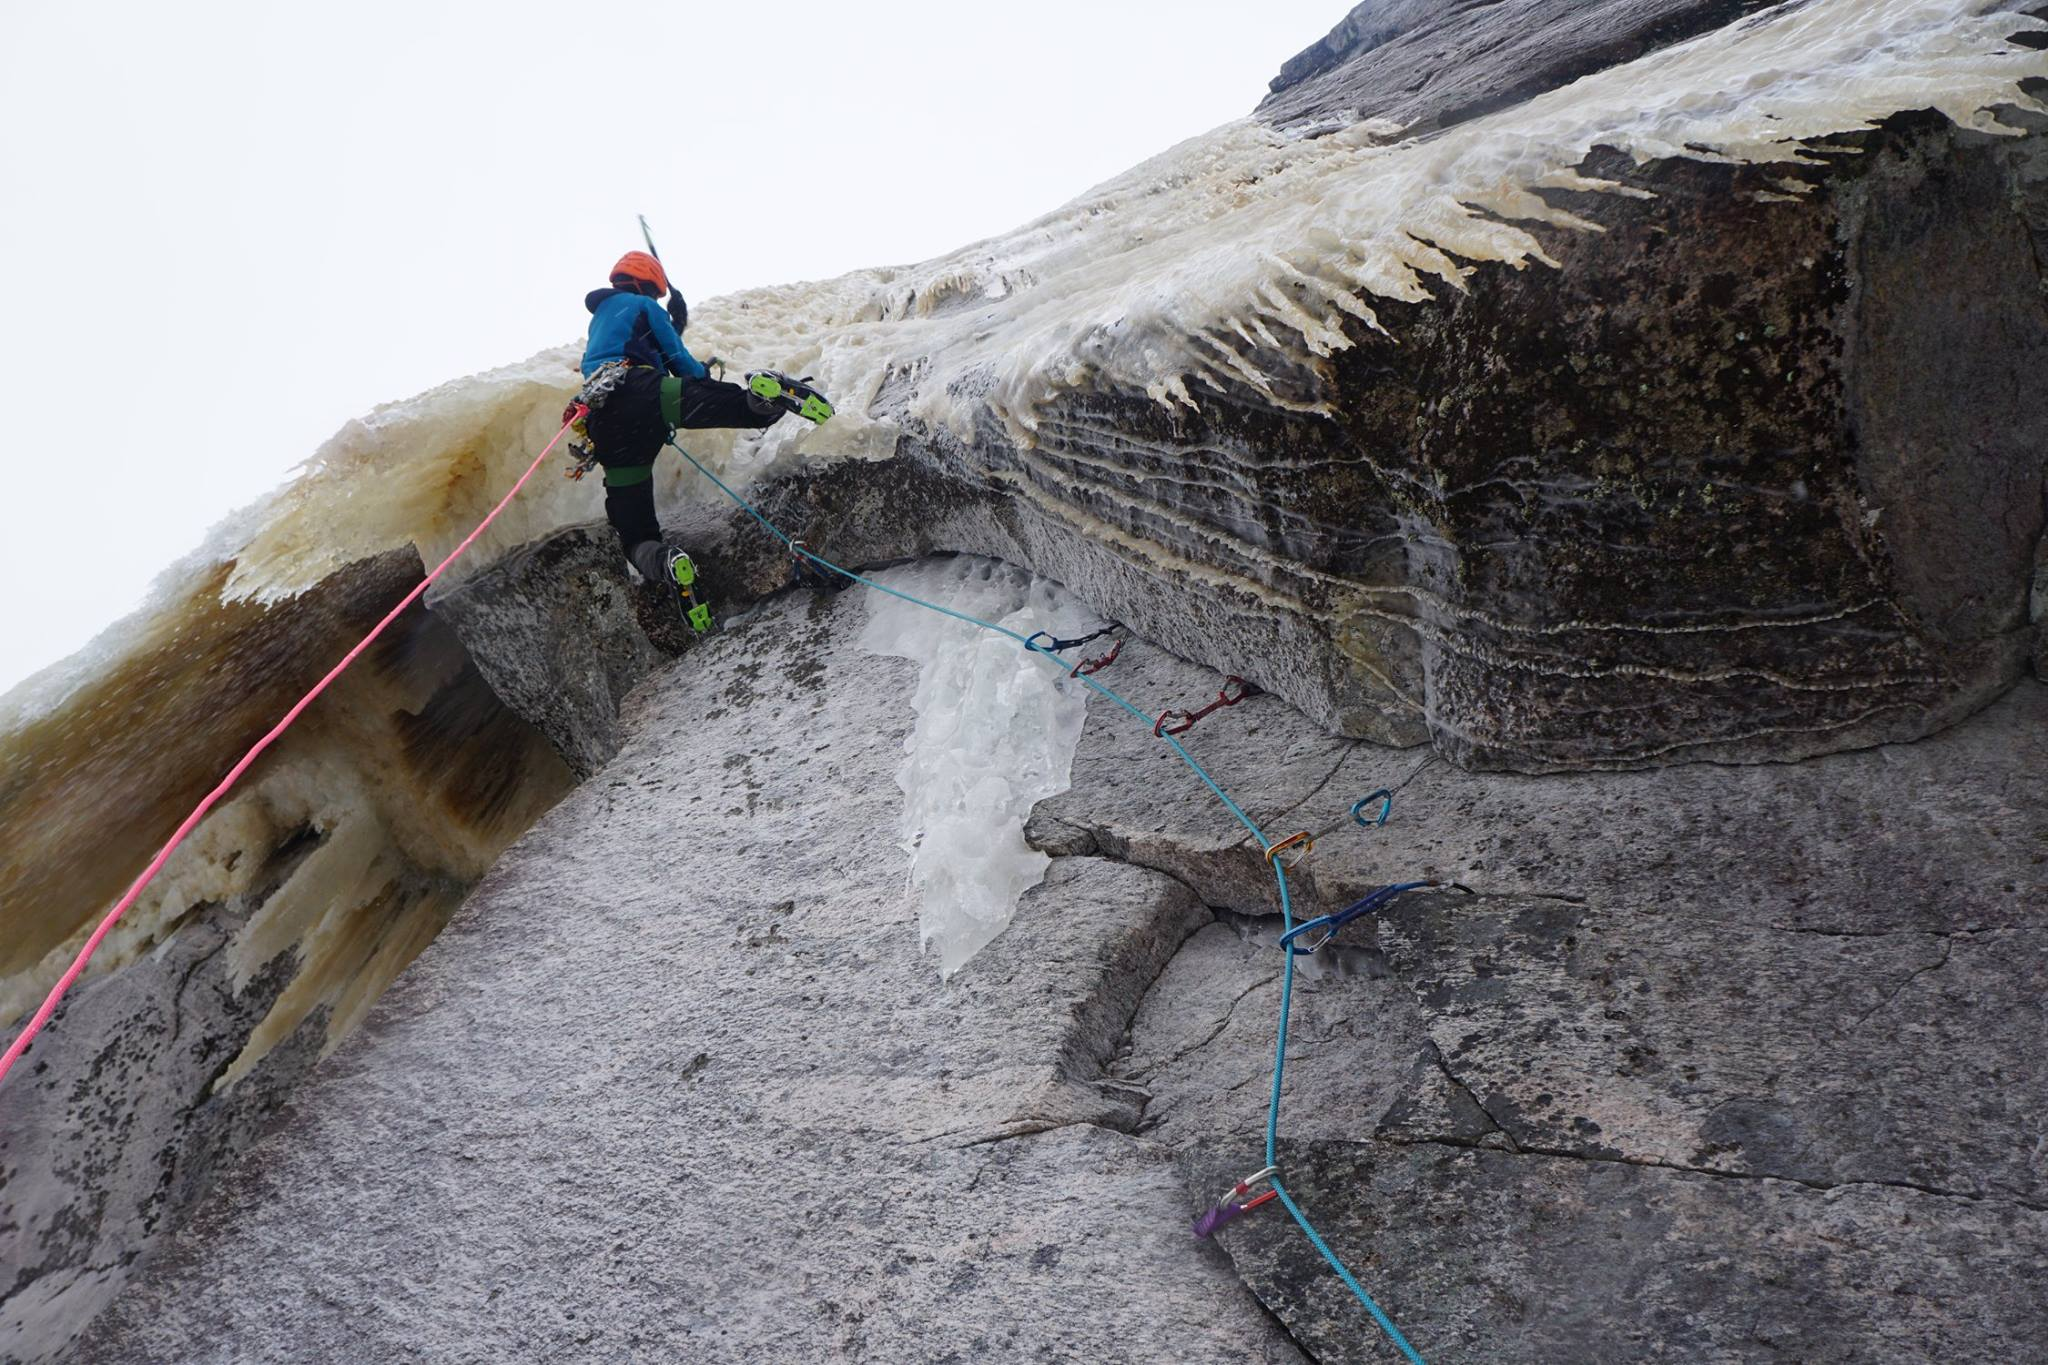 Maarten van Haeren attempting the direct start to Le Chercheur d'Or (M7 WI5, 160m). This first pitch in the mixed incarnation still awaits a redpoint. [Photo] Pete Takeda